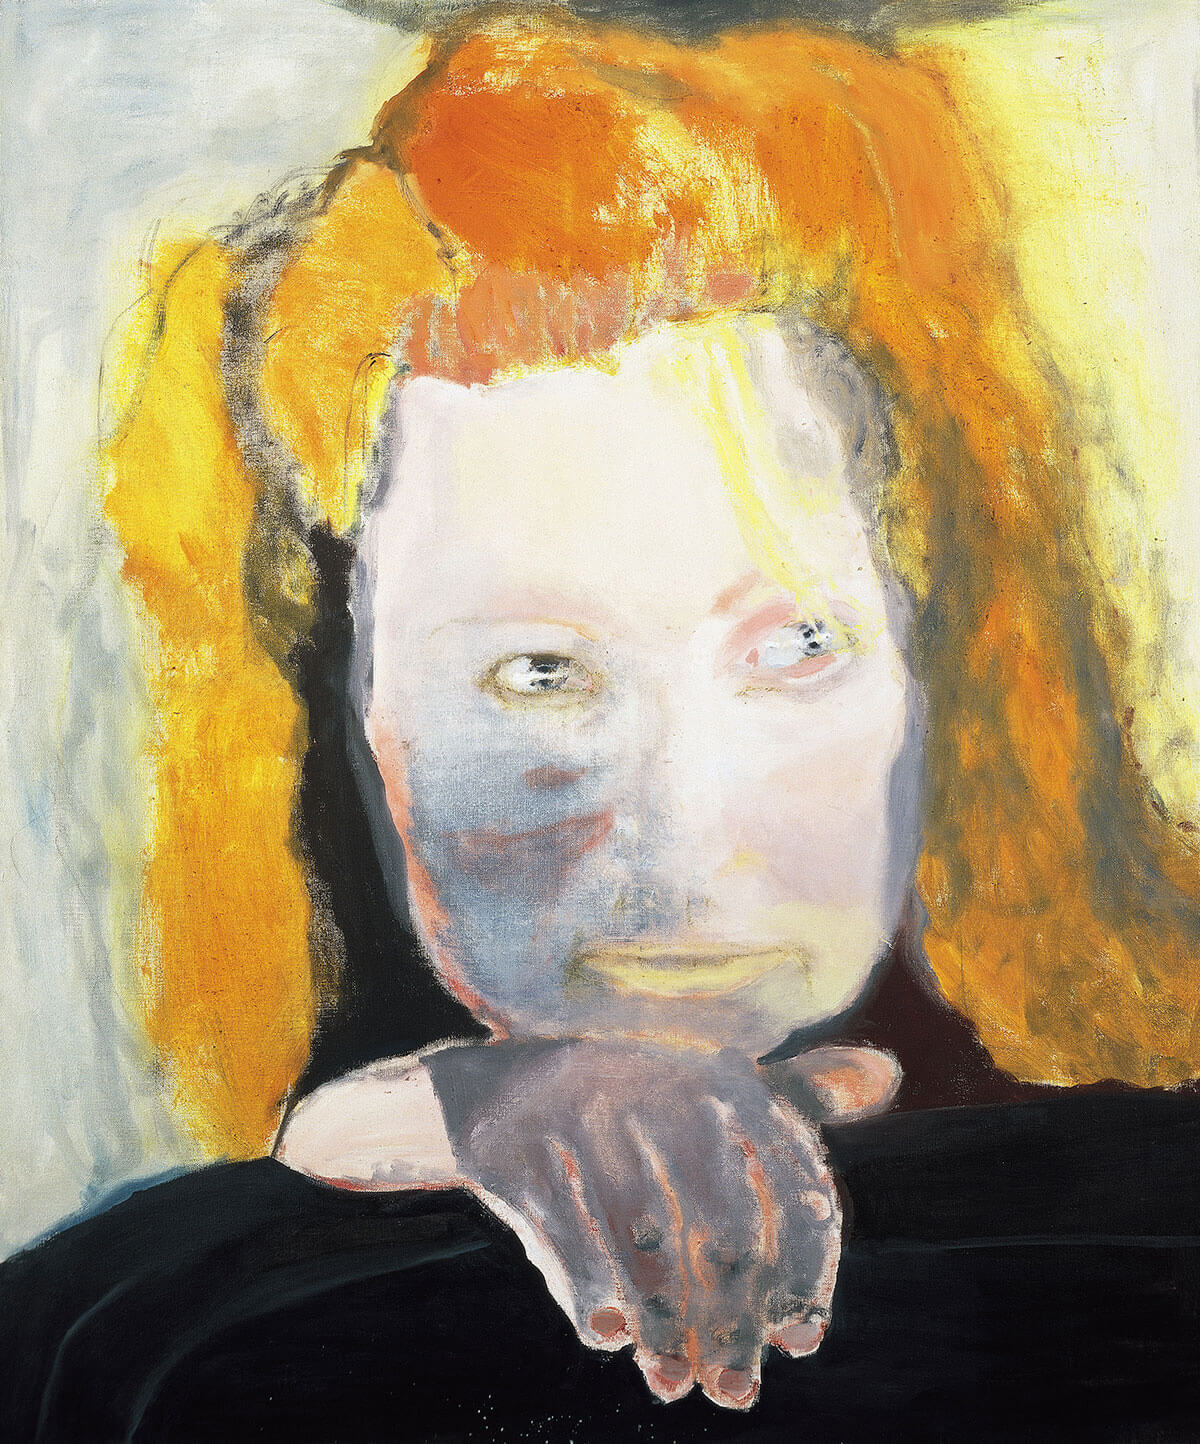 Marlene Dumas, <em>Evil is Banal</em>, 1984. Oil on Canvas. © Marlene Dumas, Photo: Peter Cox